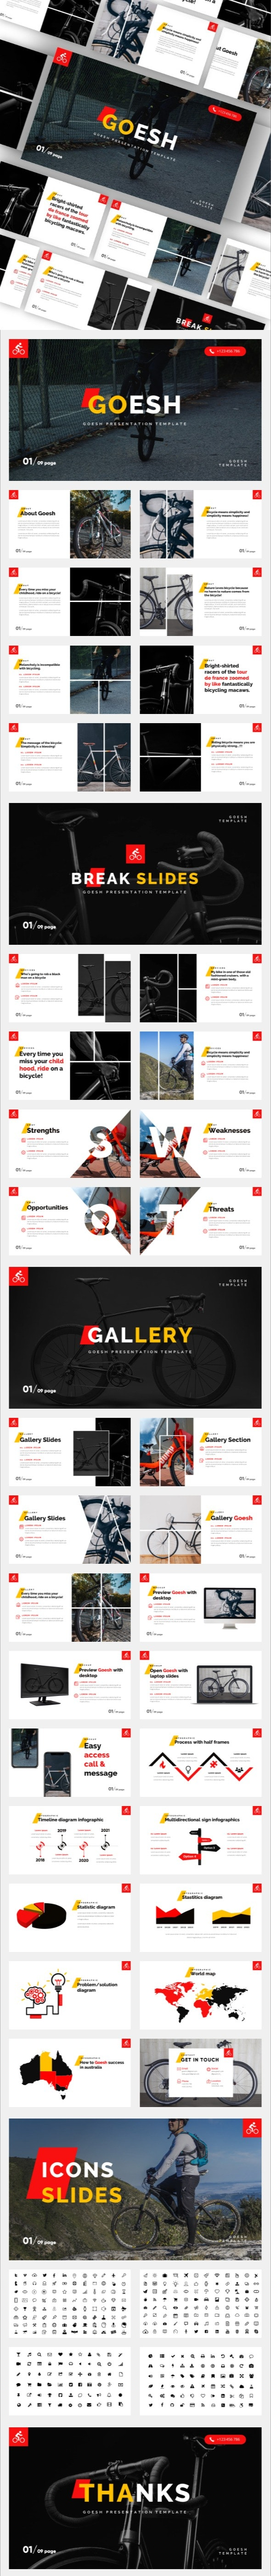 Goesh - Bicycle Sports Club Powerpoint Template - Miscellaneous PowerPoint Templates